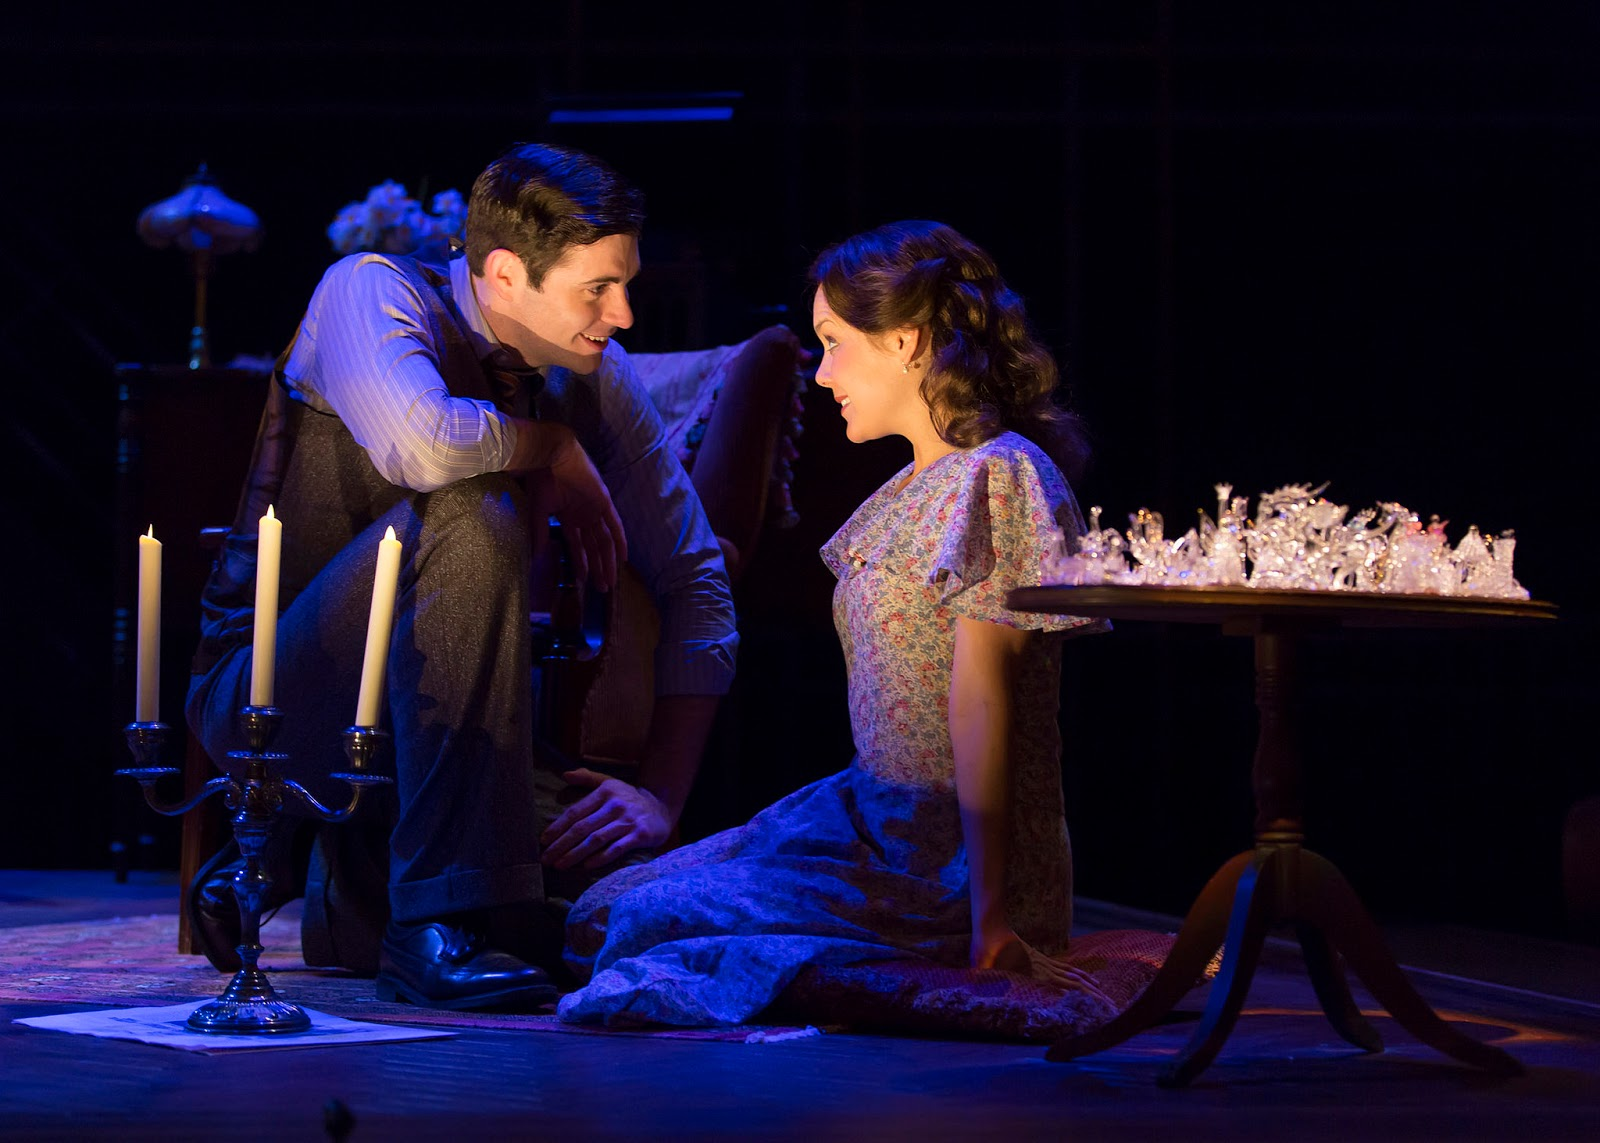 In The Glass Menagerie, how would you describe Laura's relationship with Amanda?